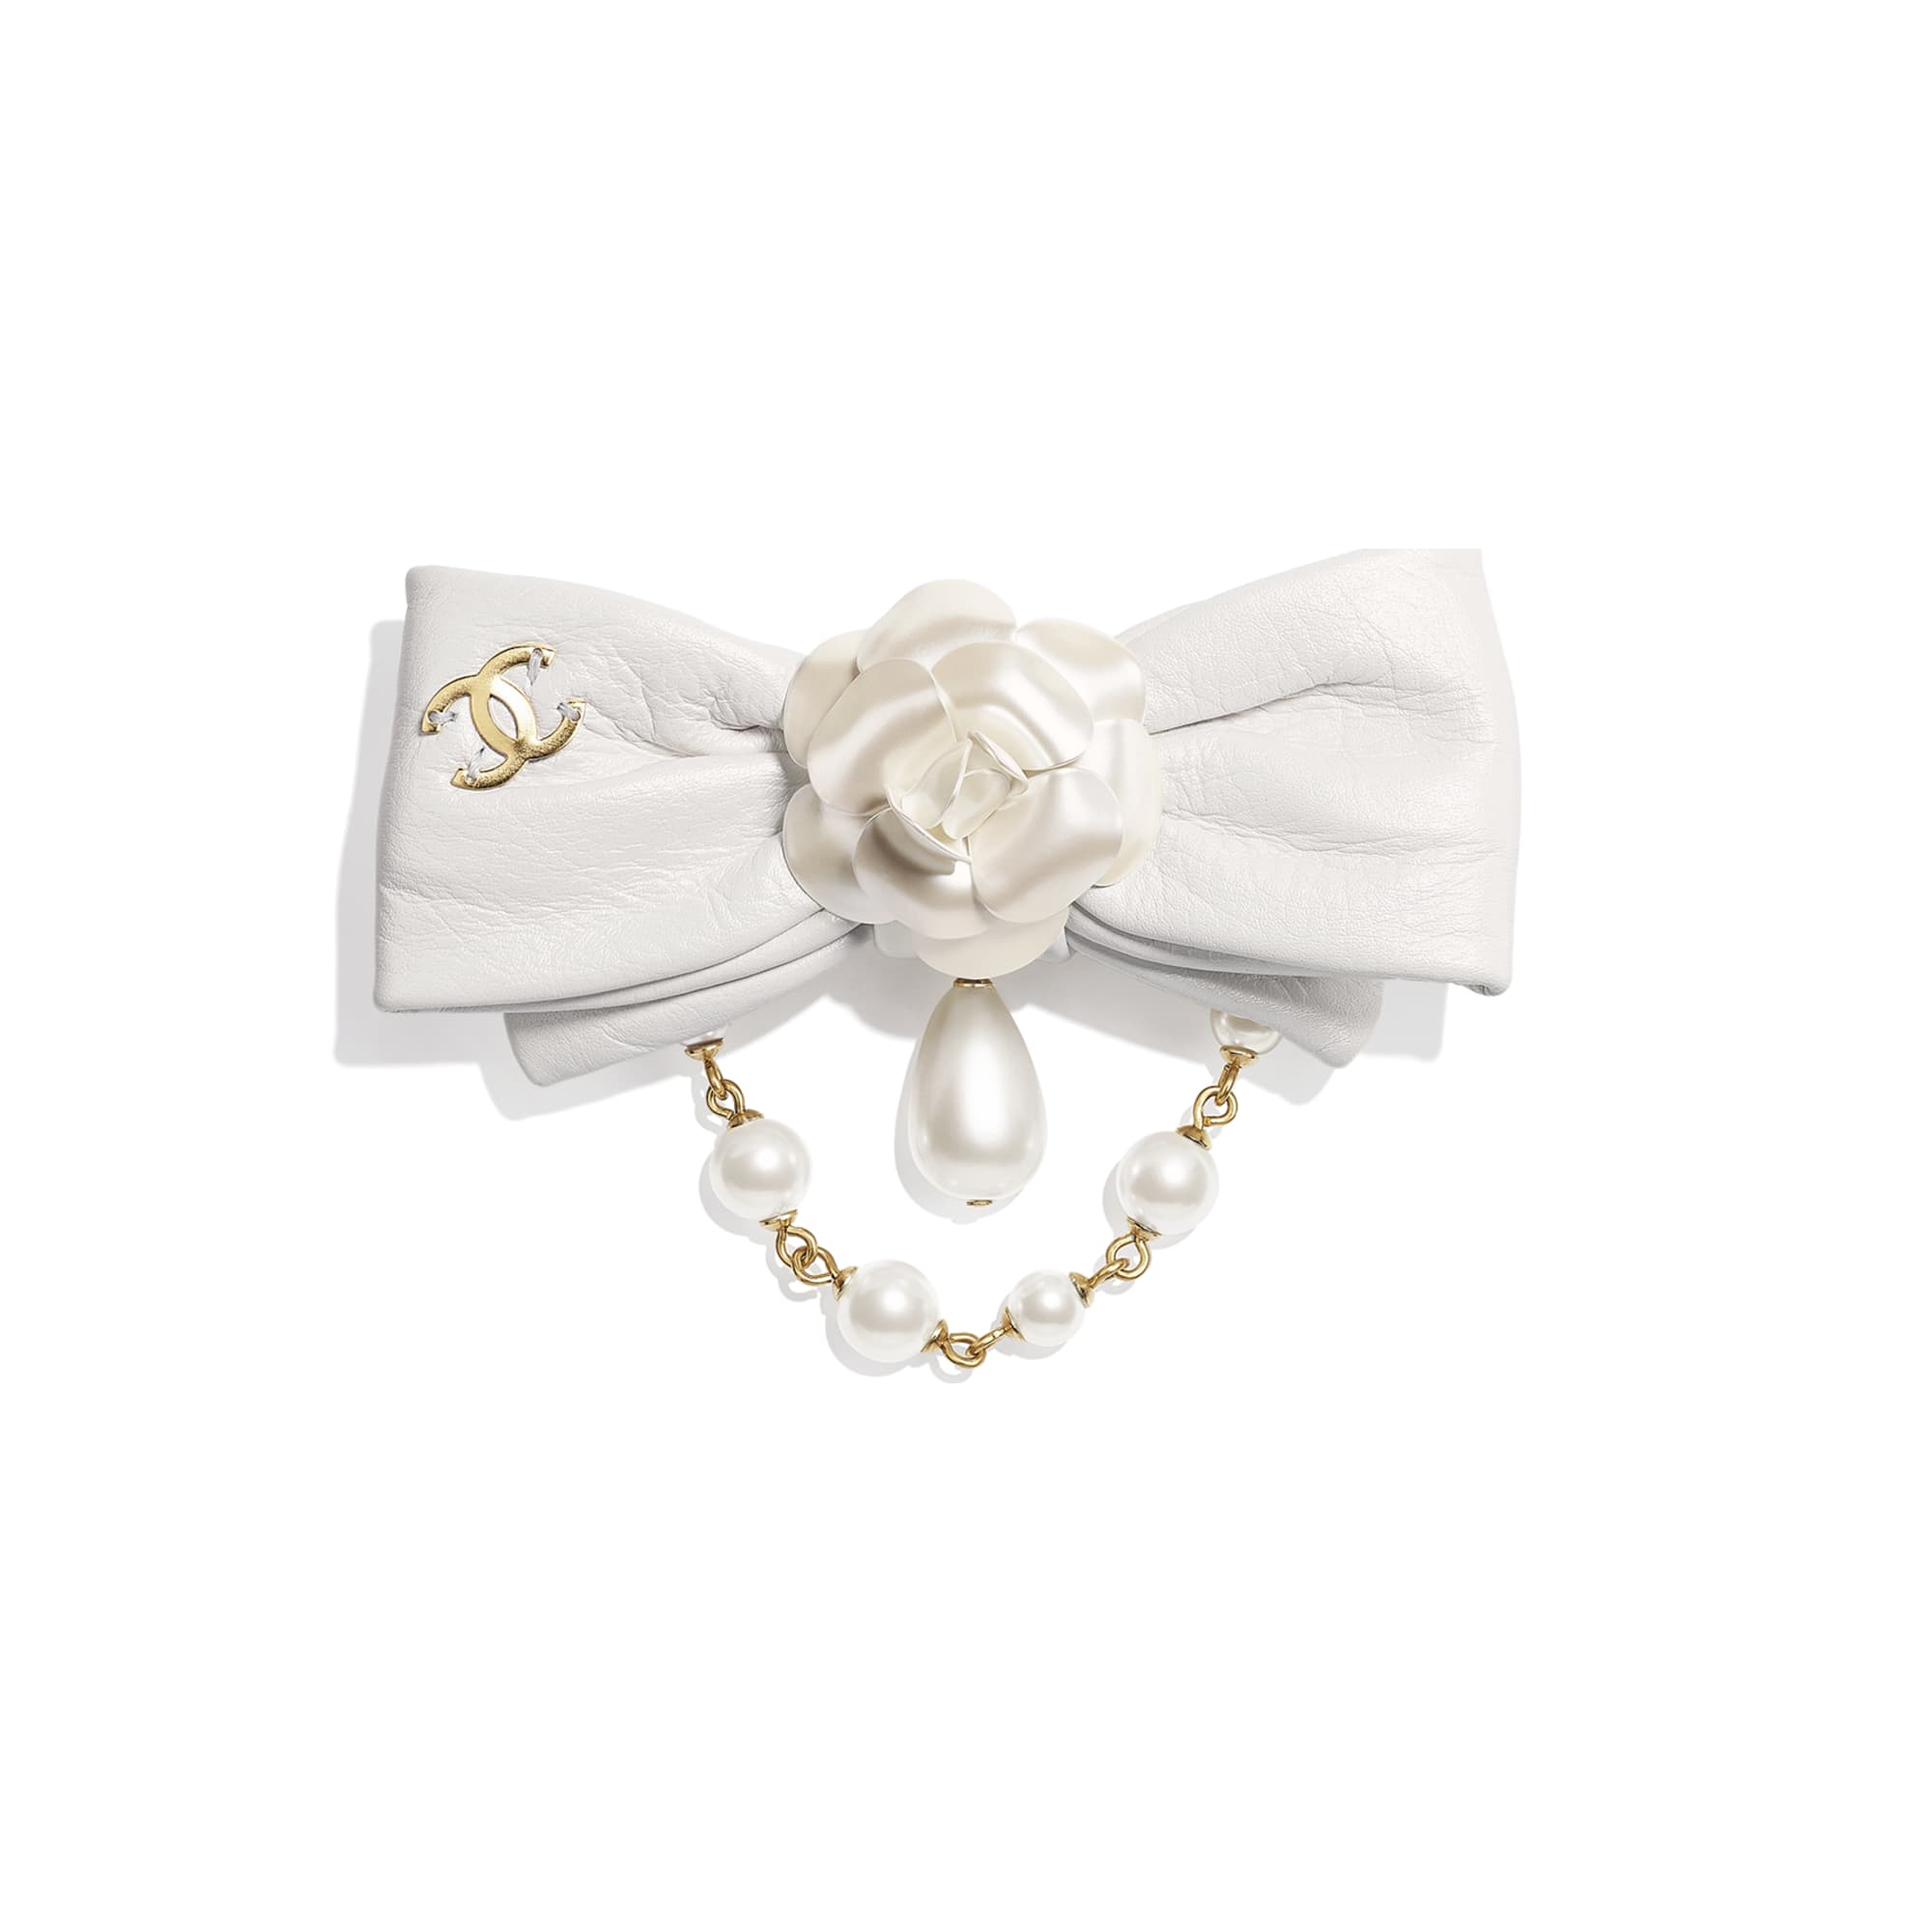 Brooch - Gold & Pearly White - Metal, Glass Pearls & Calfskin - CHANEL - Default view - see standard sized version